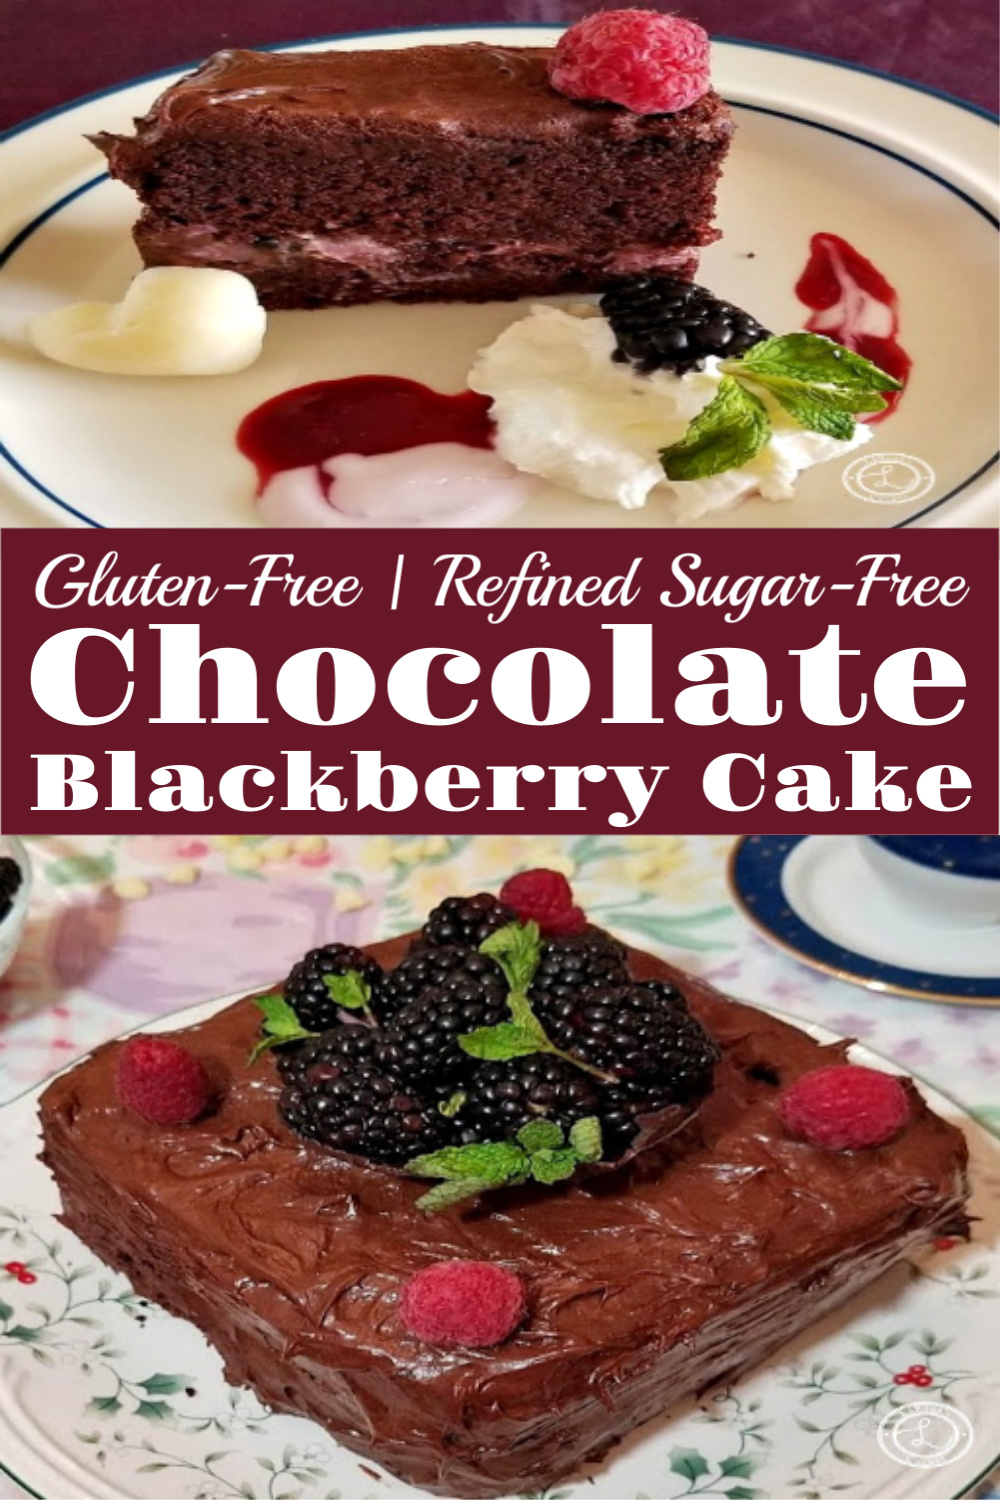 Gluten-Free Chocolate Blackberry Cake. One picture of the whole cake. One of a slice of cake.